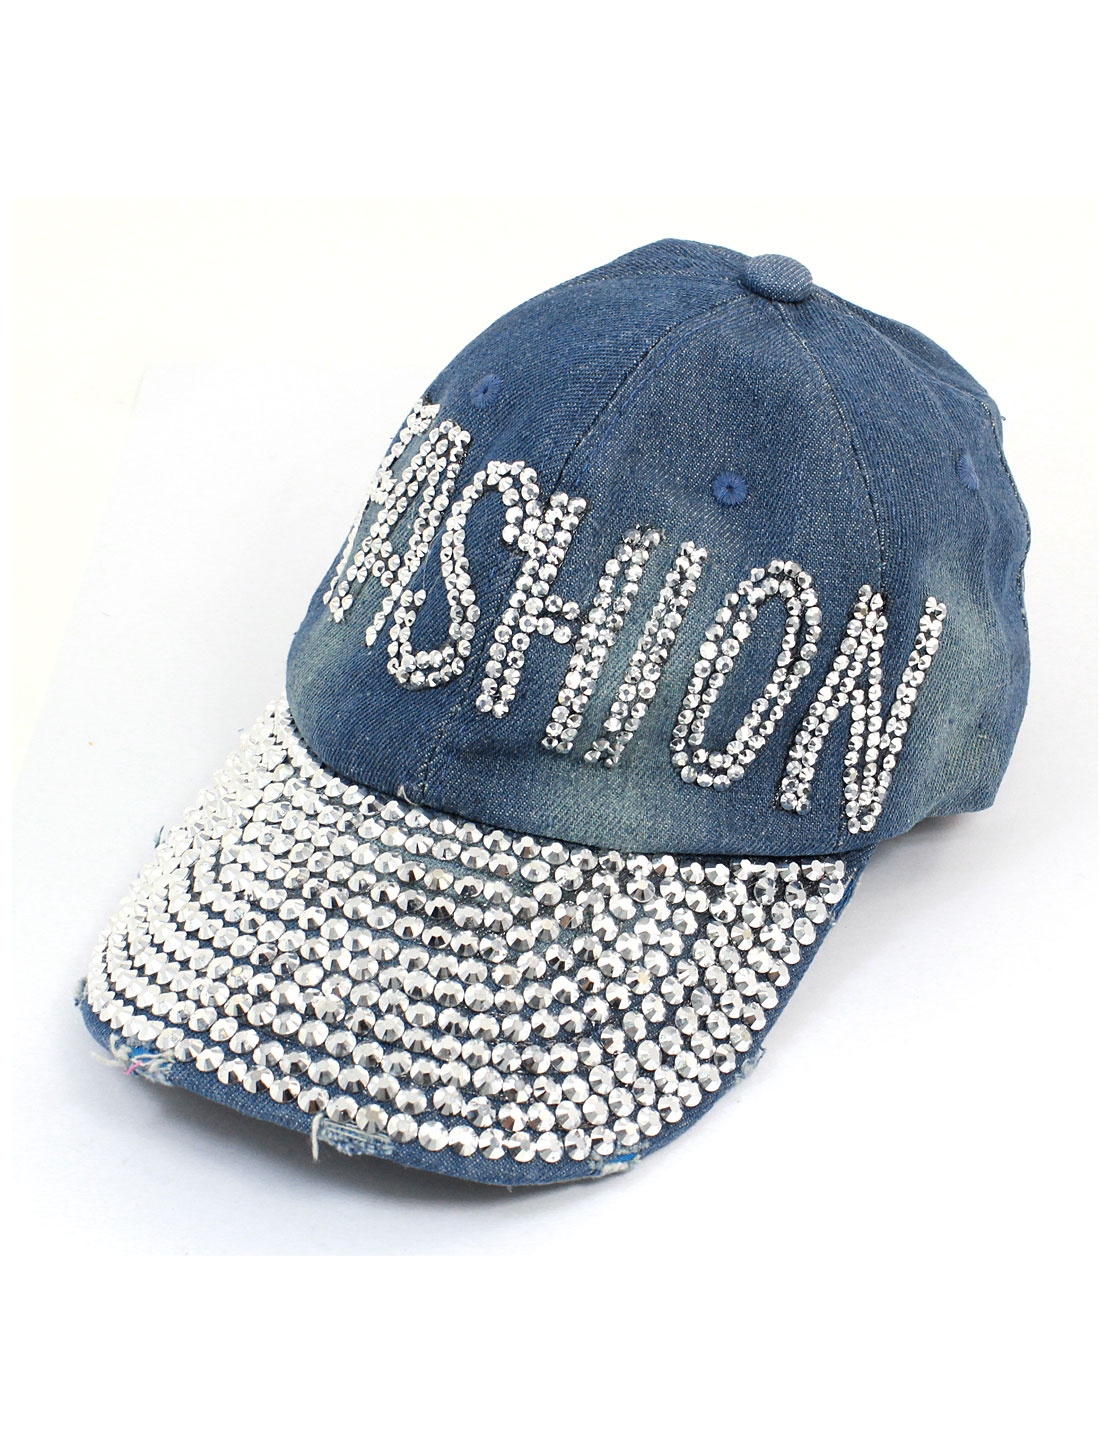 Woman Bling Bling Rhinestones Letters Decor Visor Front Summer Peaked Cap Hat Light Blue